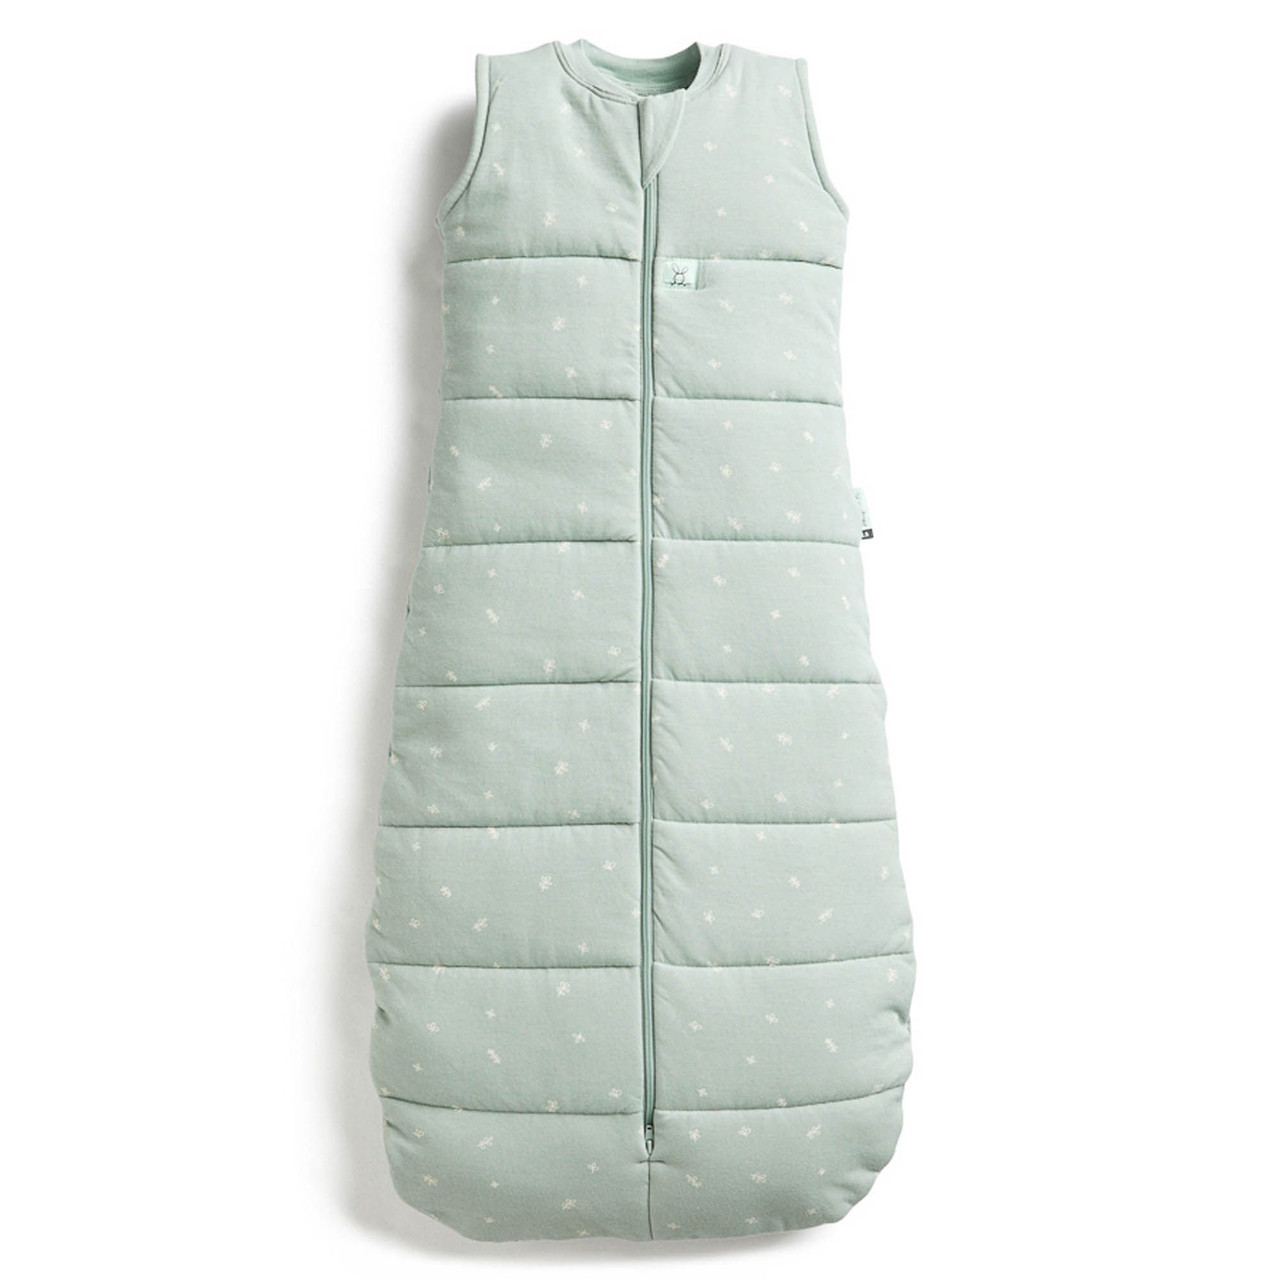 Ergopouch 2.5 tog Jersey Sleeping Bag 3-12 Months SAGE at Baby Barn Discounts